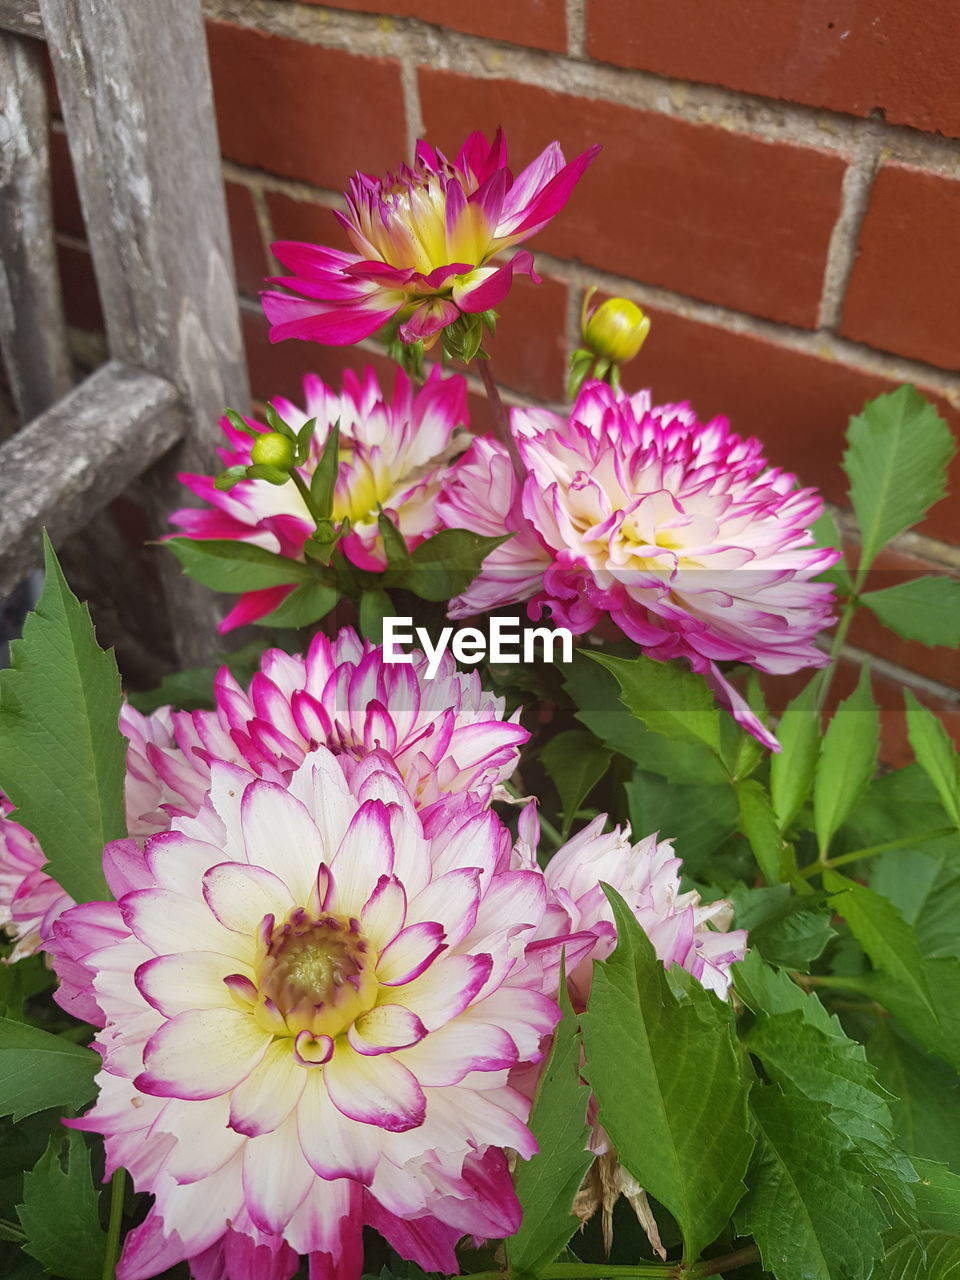 flowering plant, flower, vulnerability, fragility, plant, beauty in nature, petal, freshness, flower head, inflorescence, growth, pink color, close-up, nature, leaf, plant part, no people, day, outdoors, front or back yard, purple, flower pot, flower arrangement